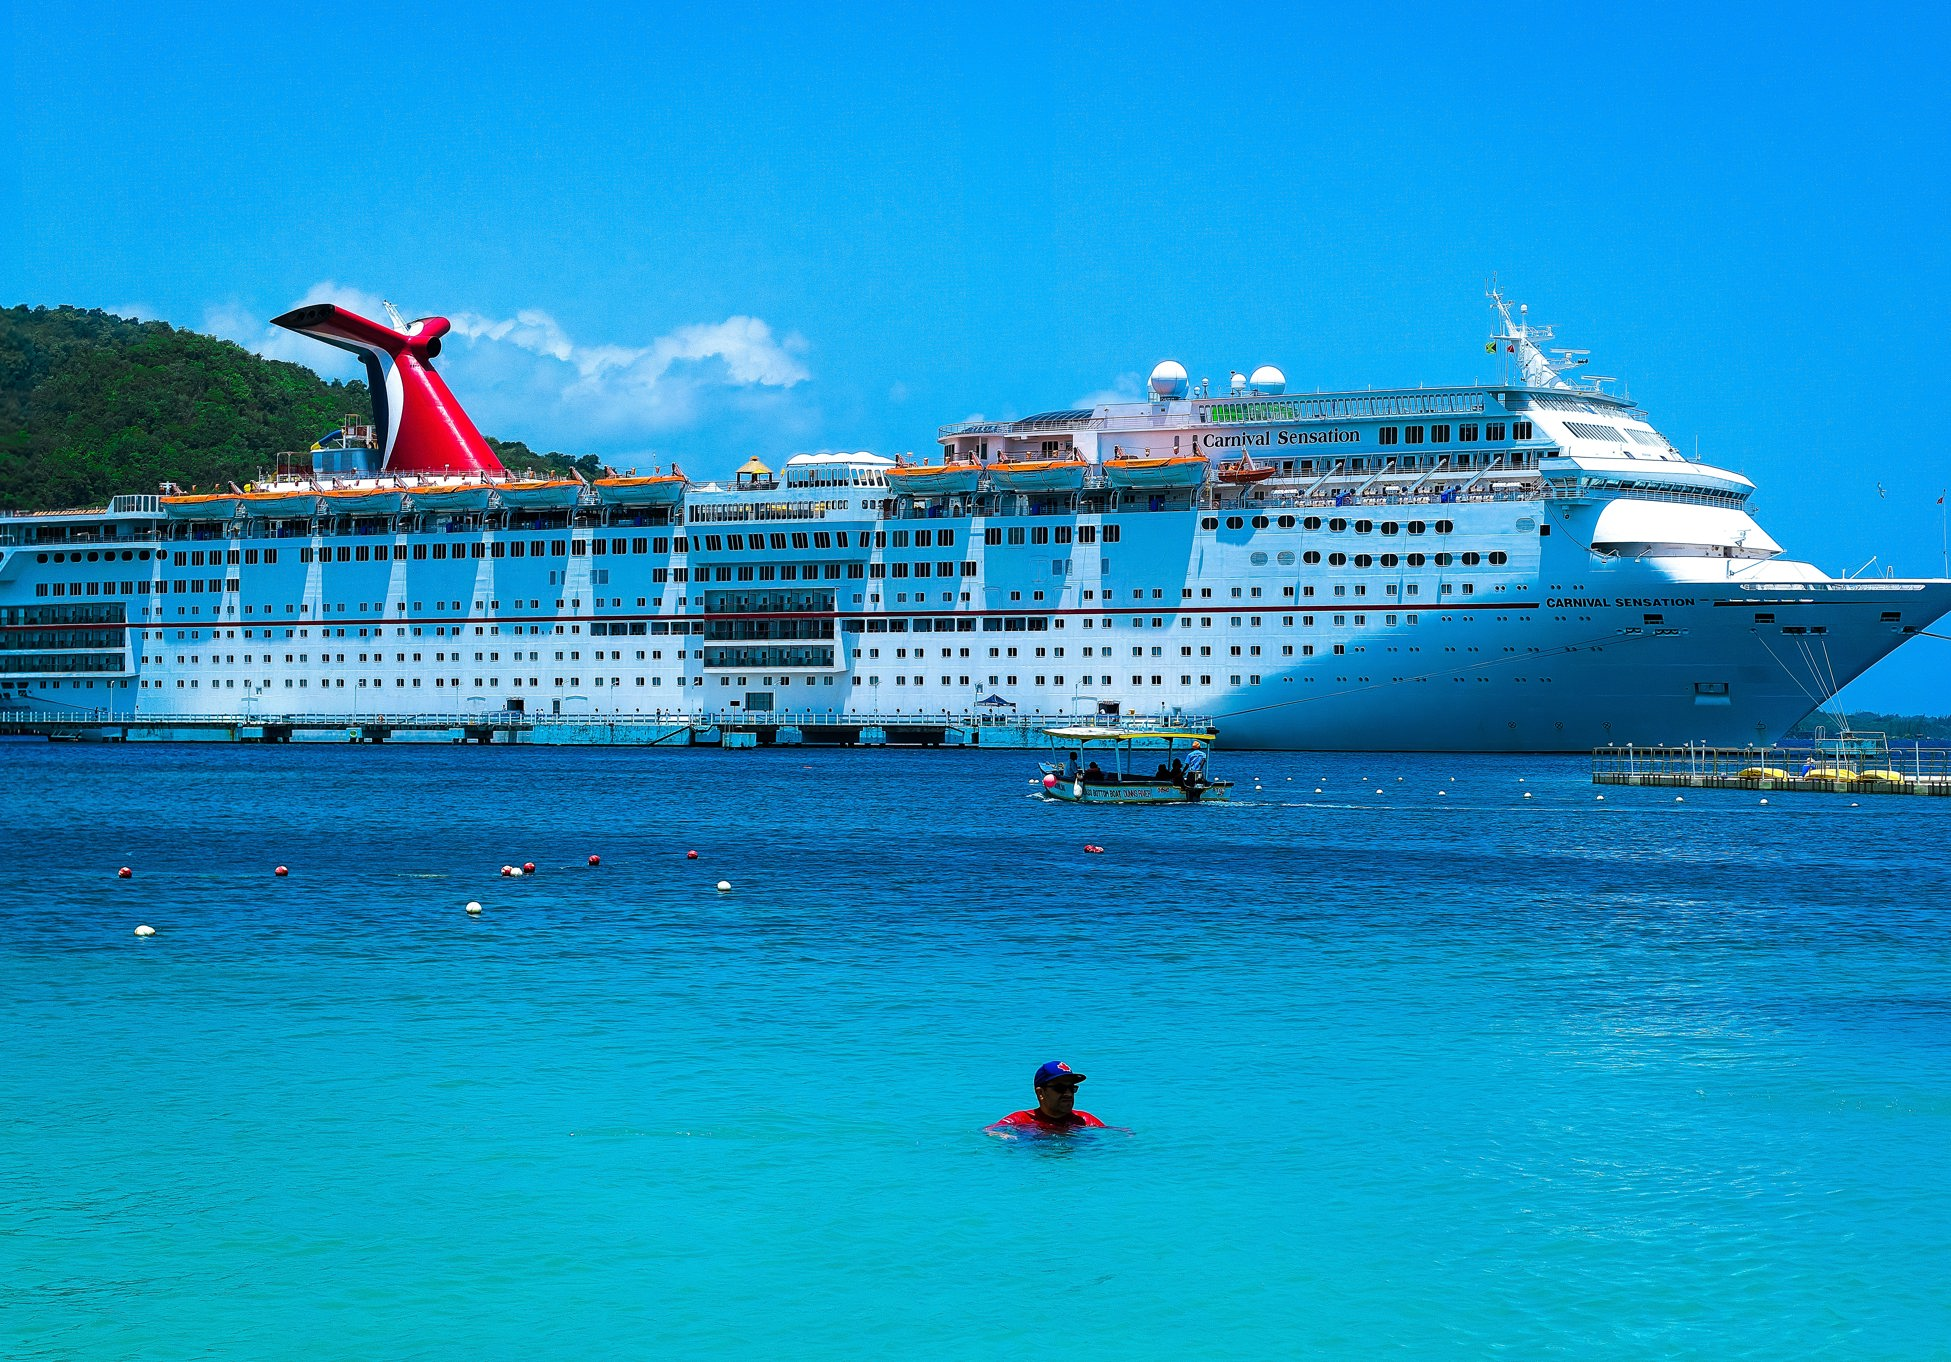 Carnival Cruise CCL stock news and analysis